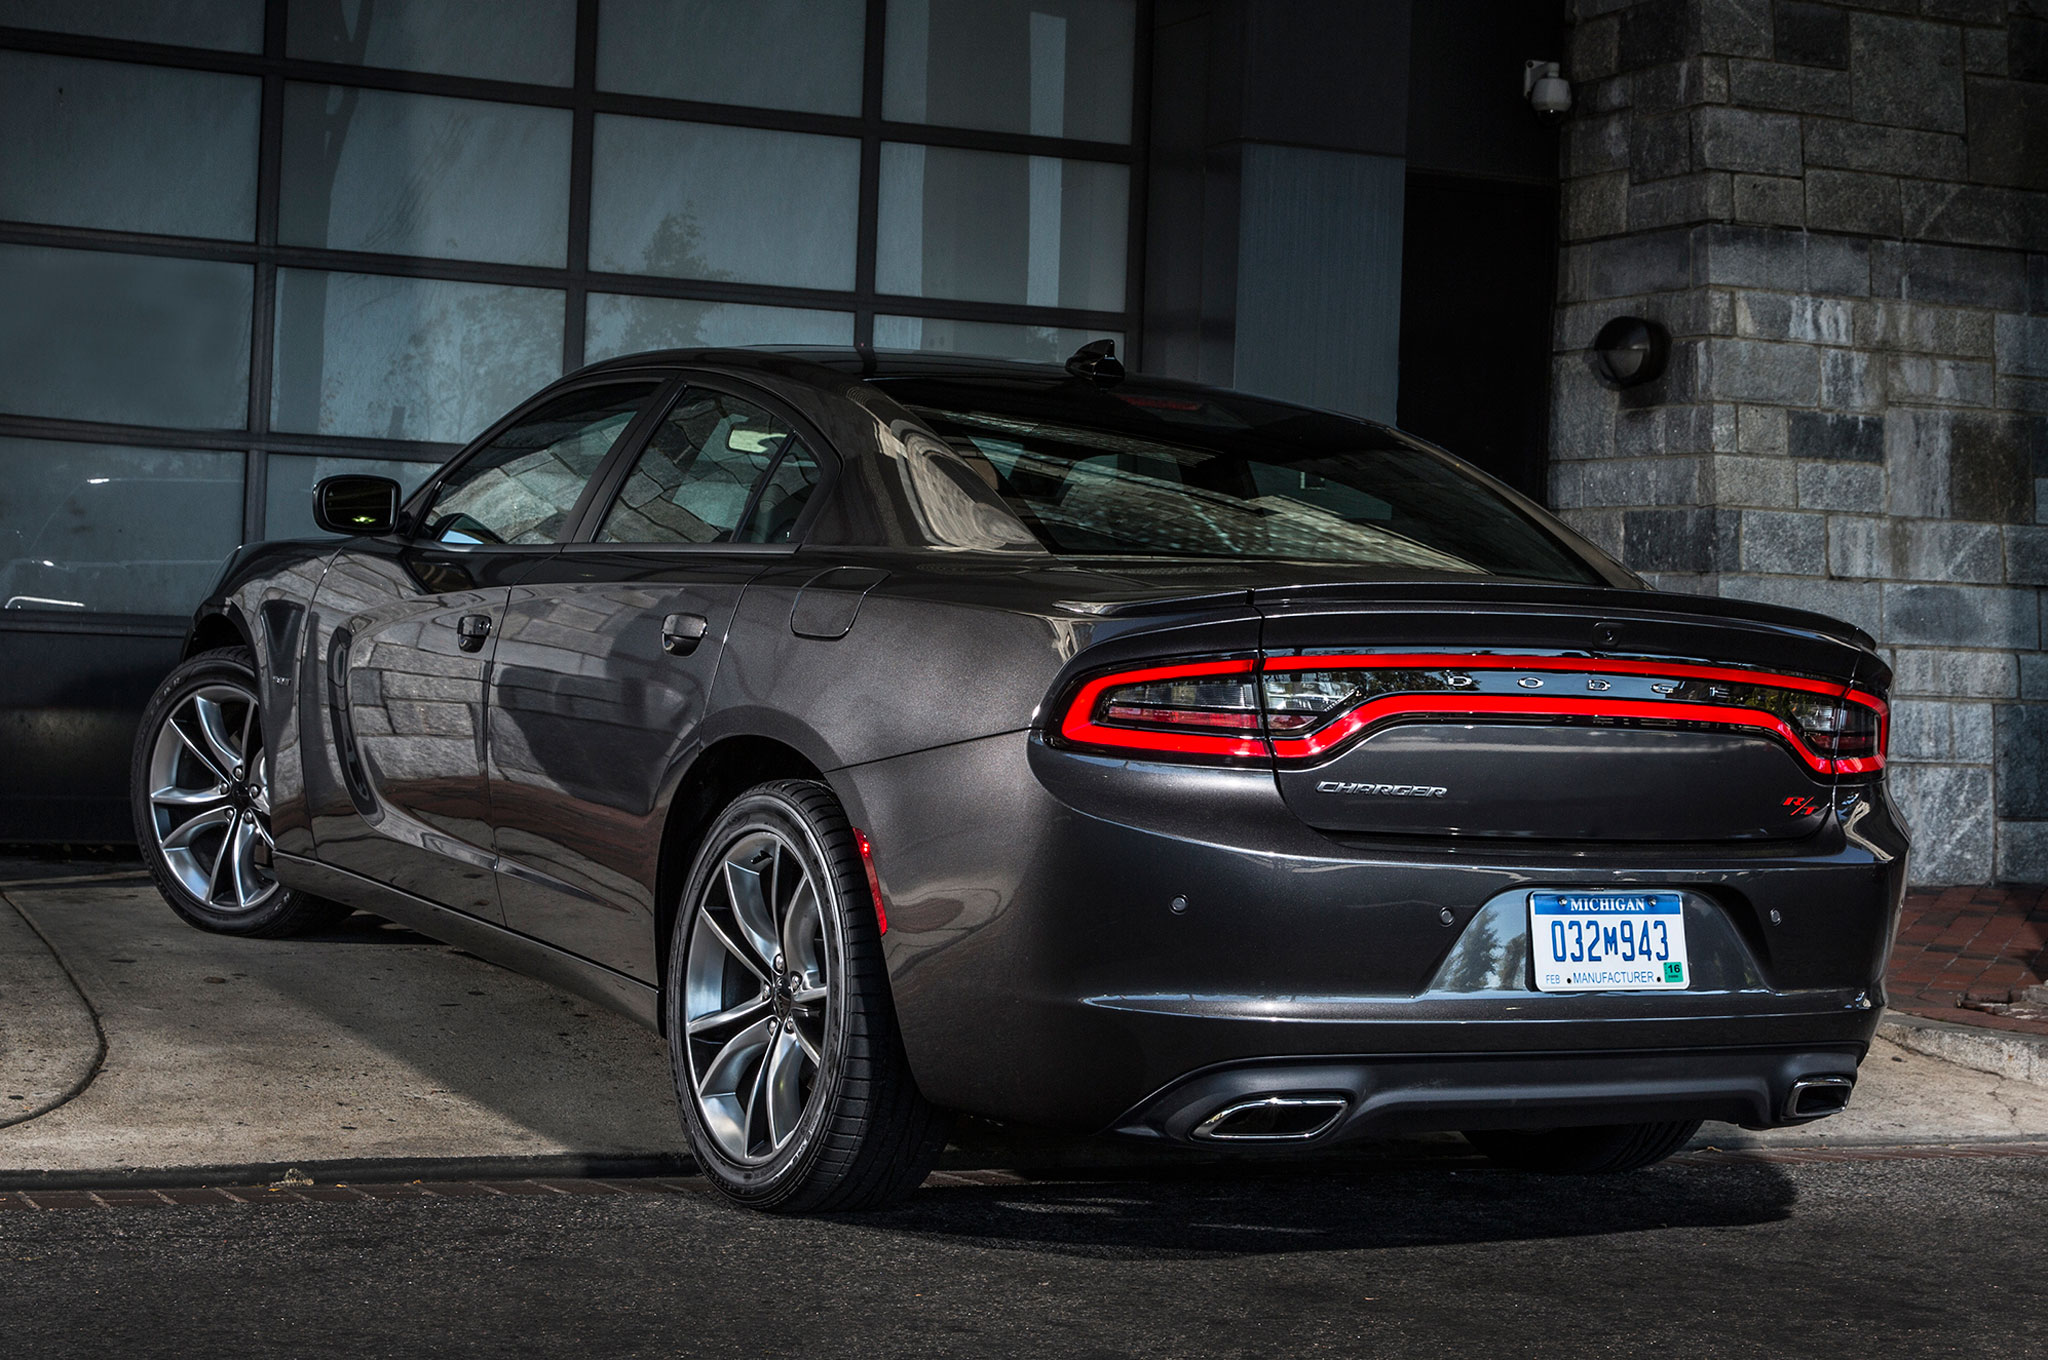 2015 Dodge Charger RT Rear Three Quarter View 4